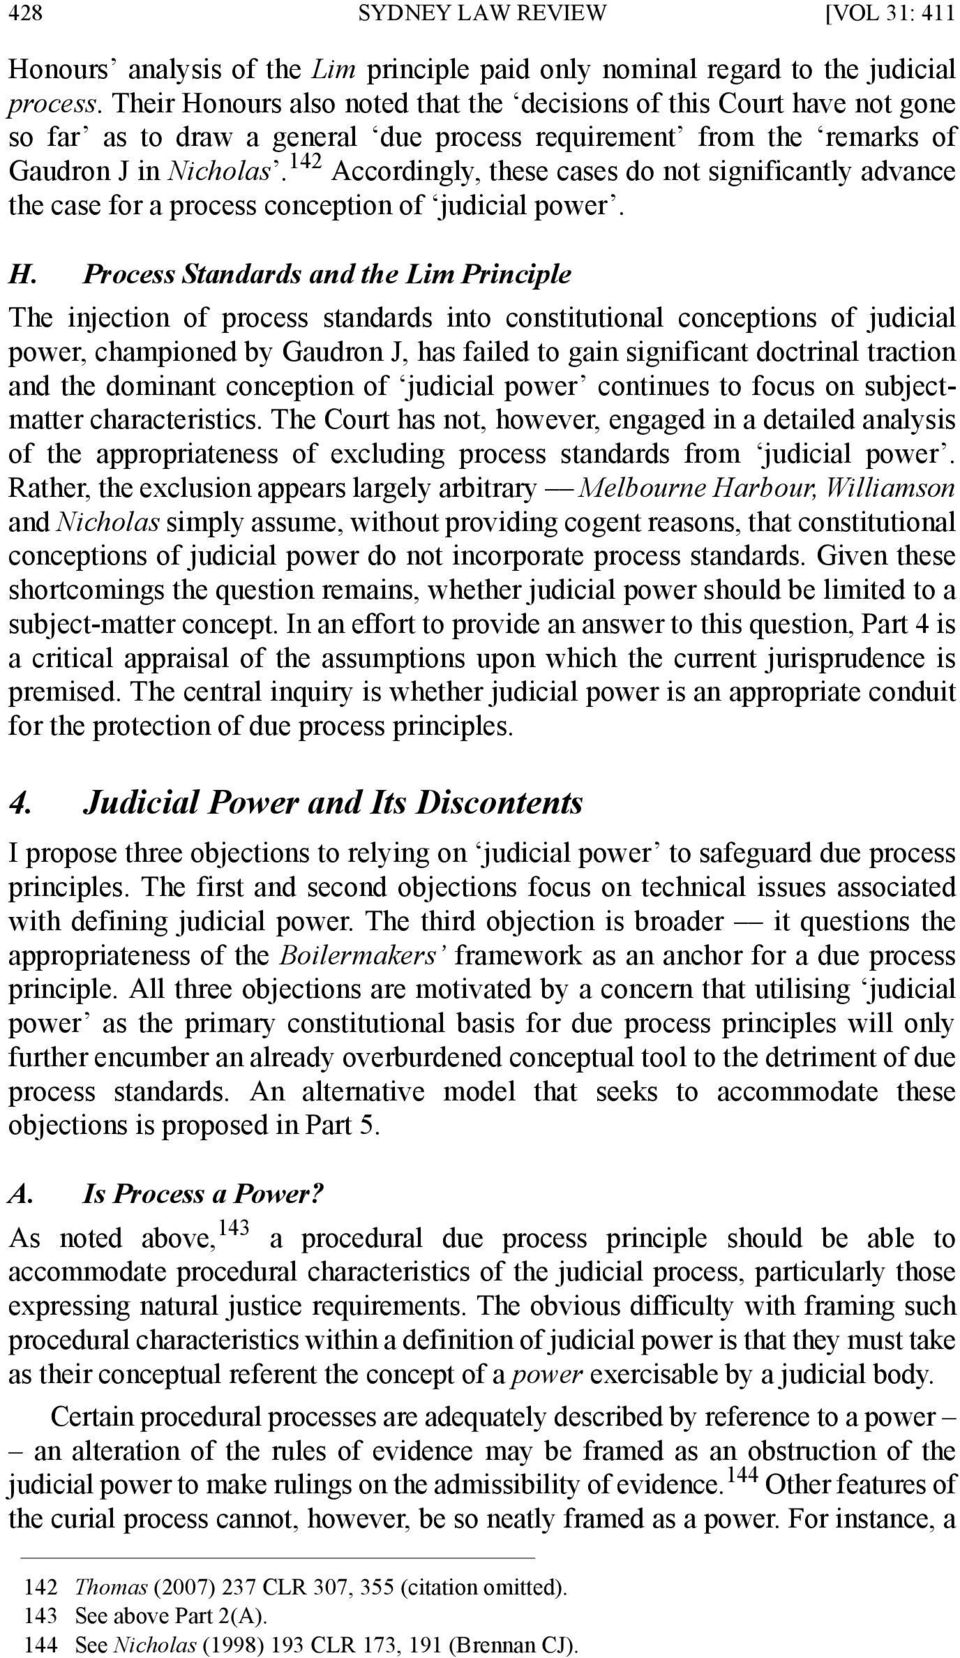 142 Accordingly, these cases do not significantly advance the case for a process conception of judicial power. H.